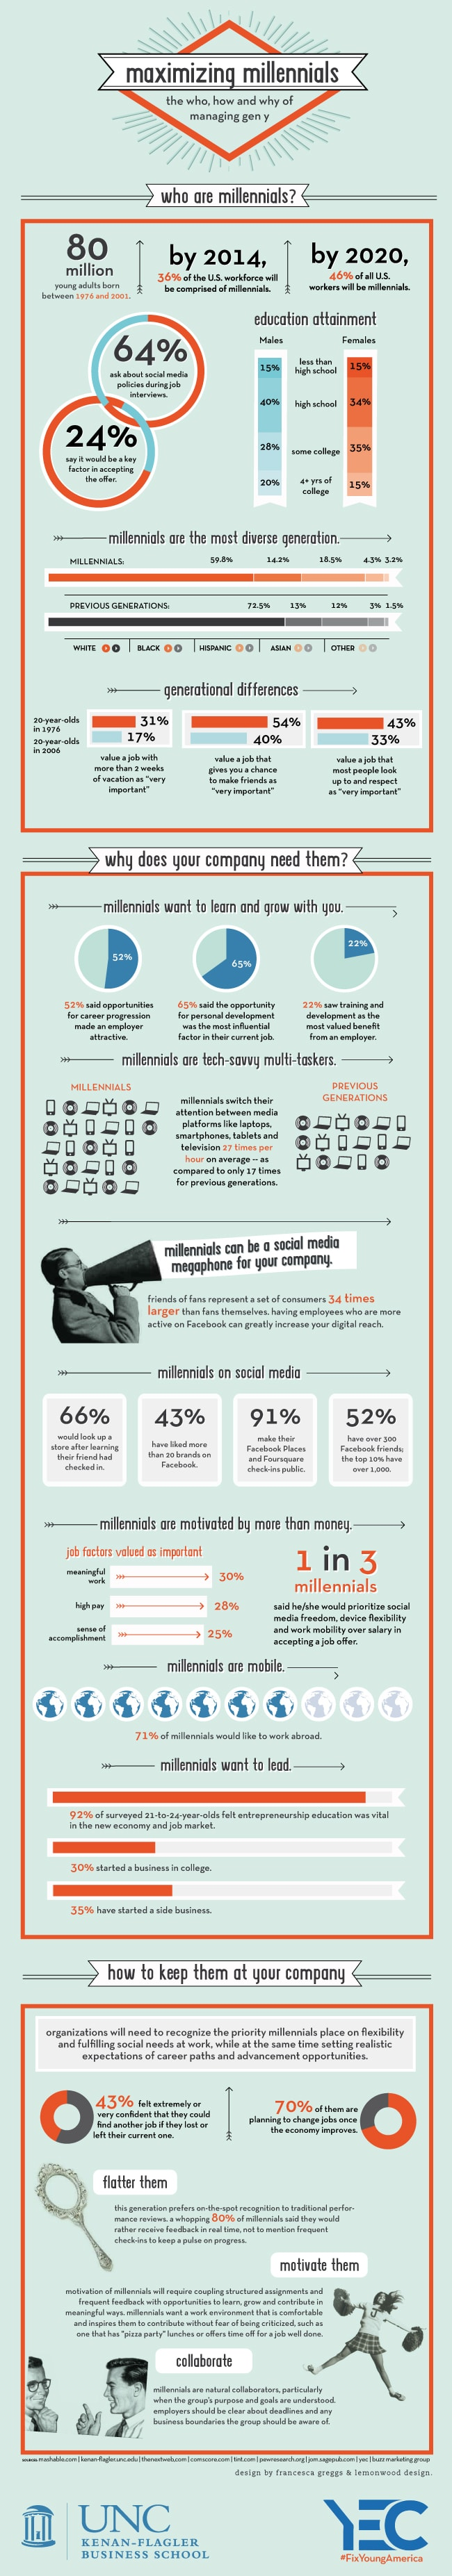 research how to recruit millennials geny in the workplace infographic mba at unc